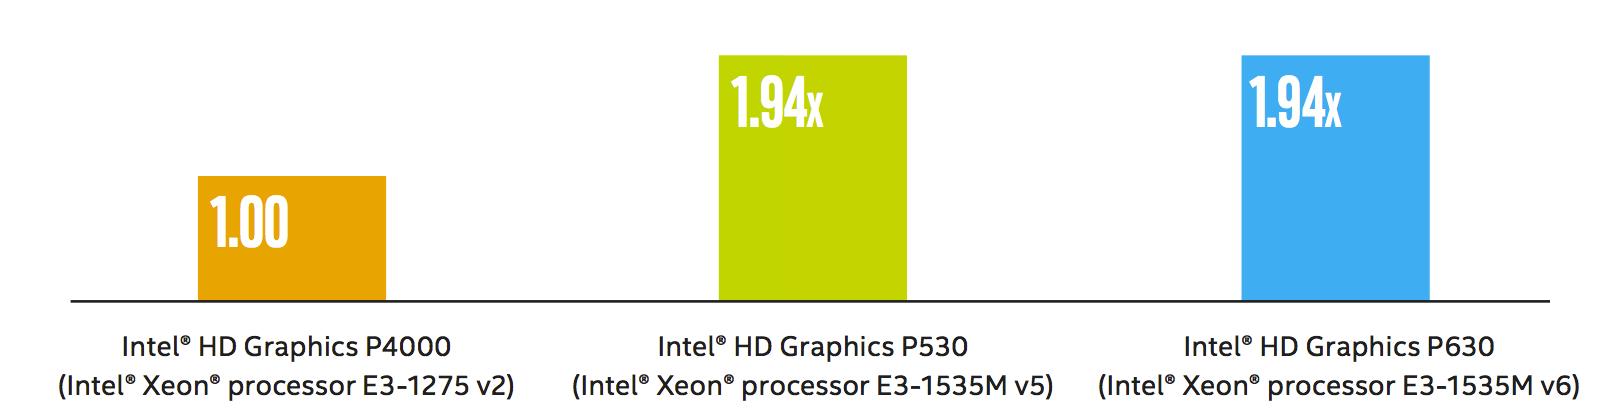 Intel Iris Plus Graphics 640 vs Intel HD Graphics P630